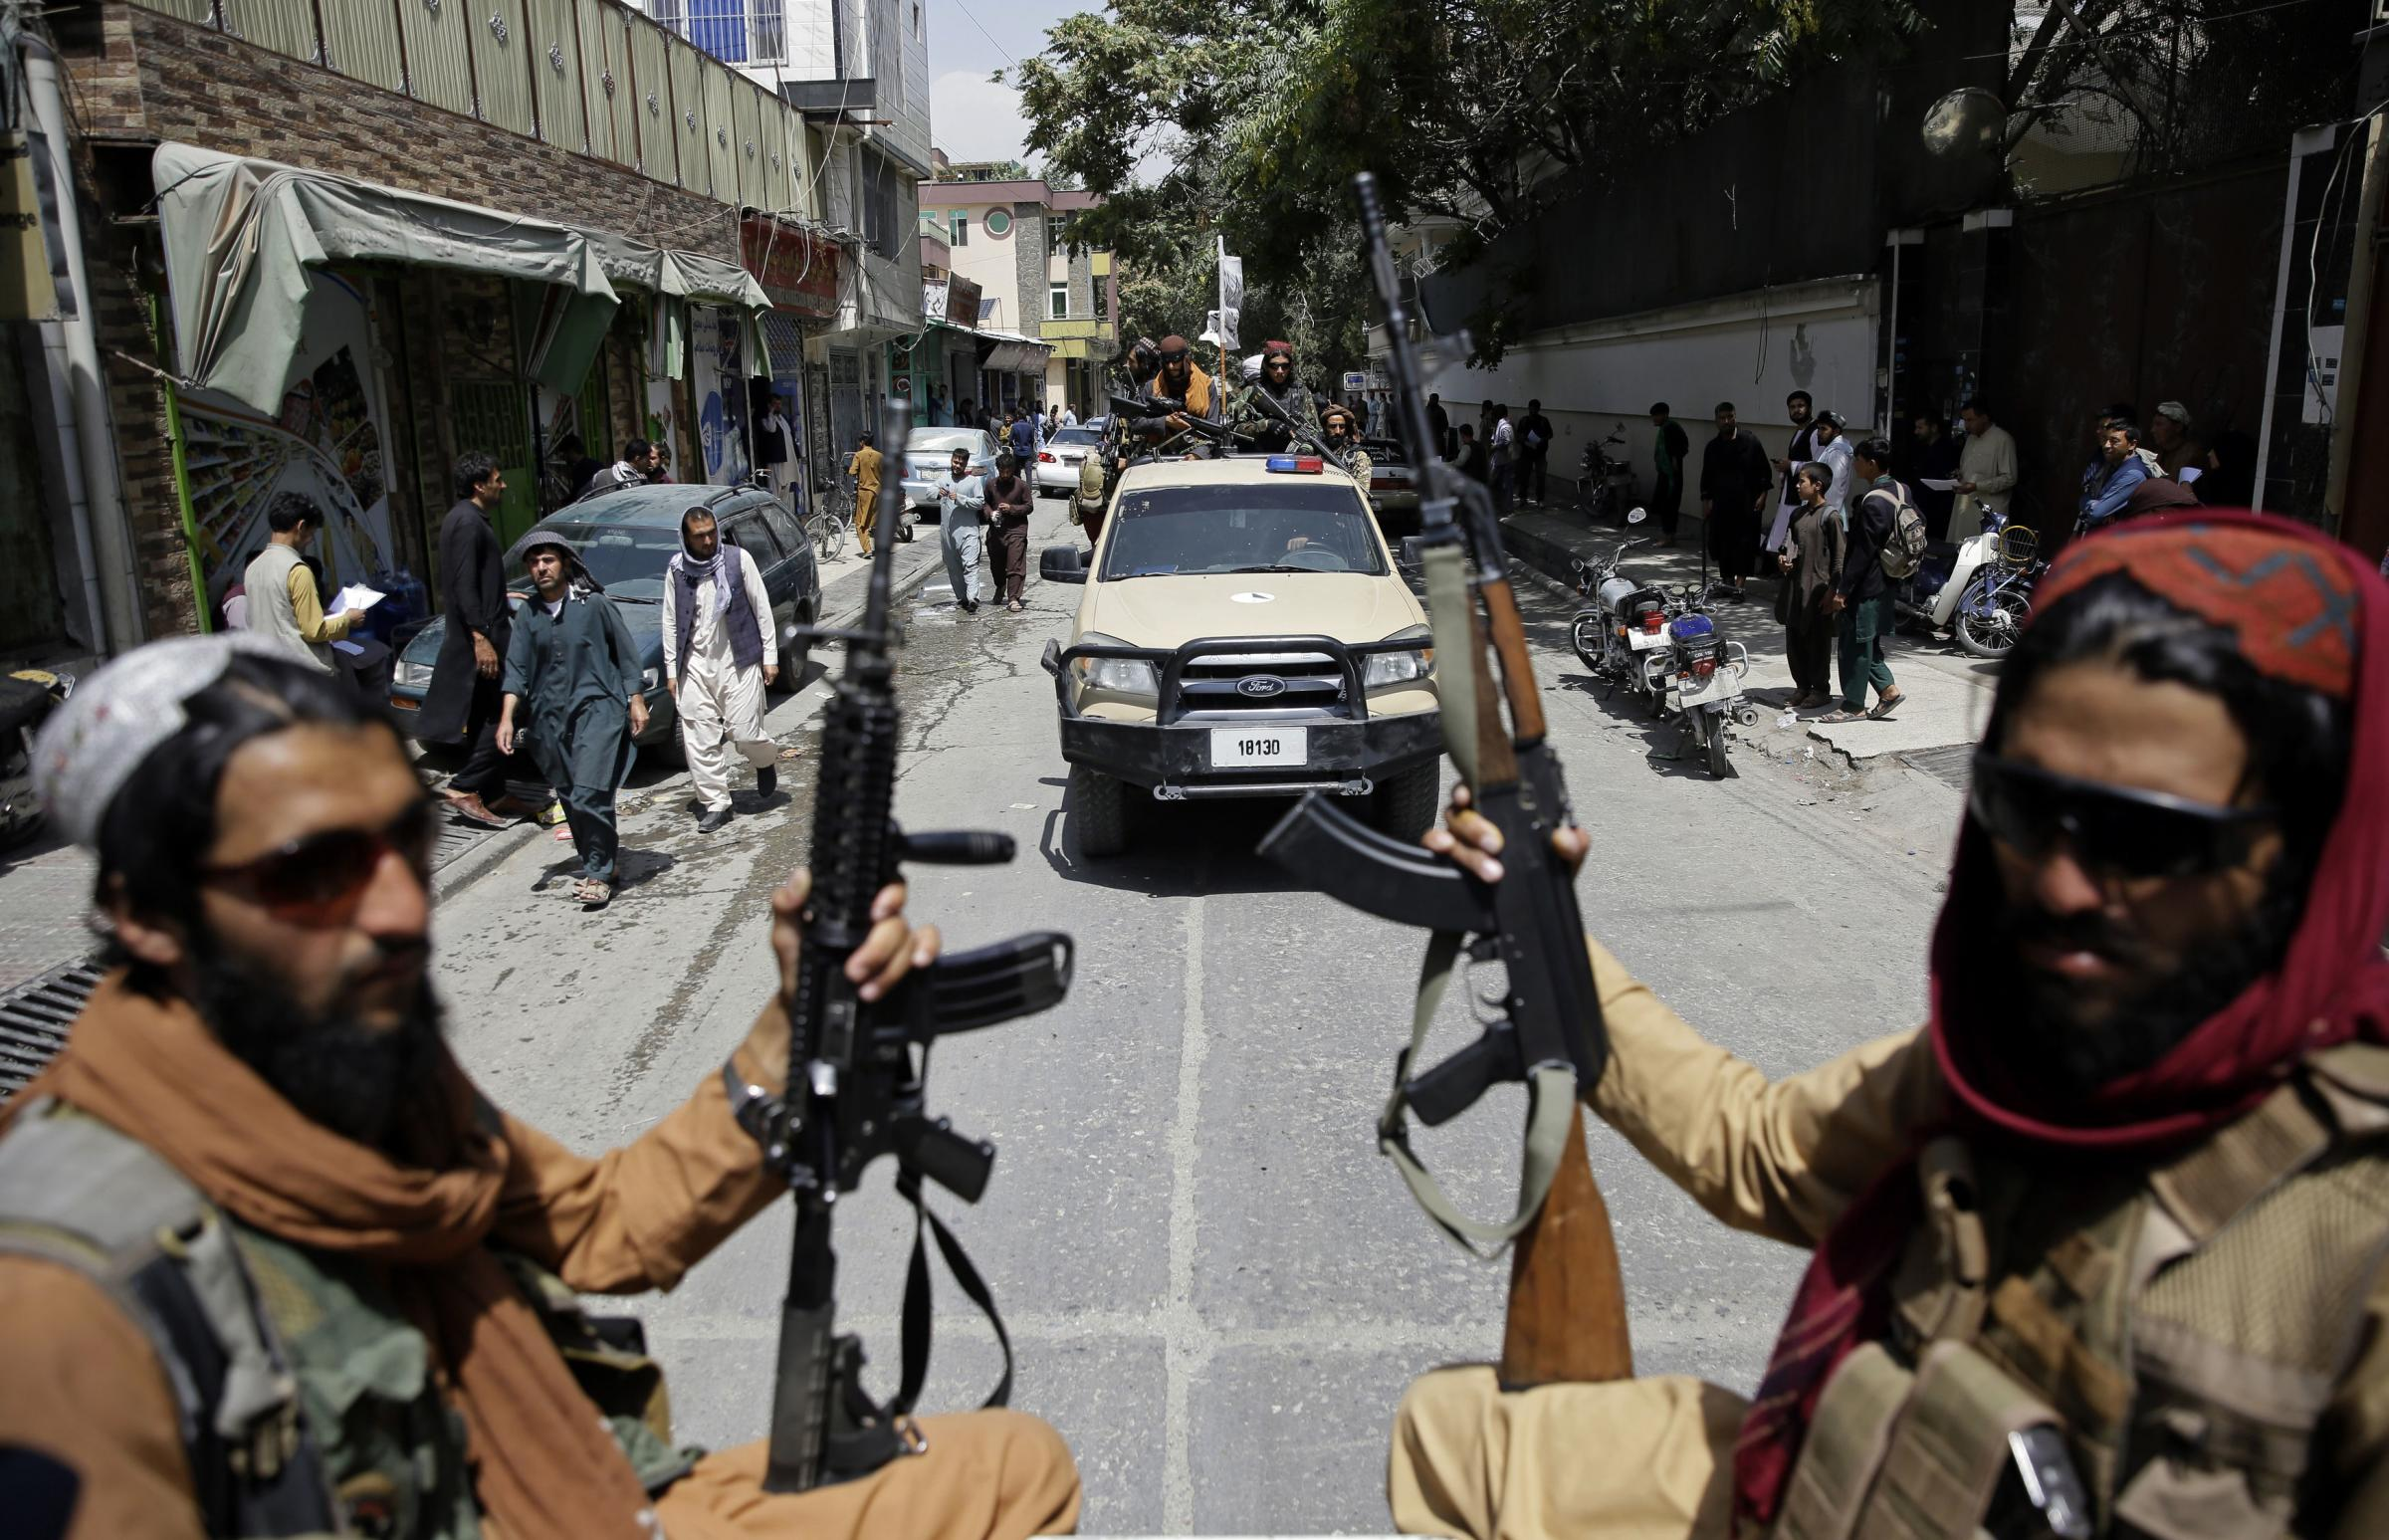 Taliban insurgence was no surprise to those who know their history